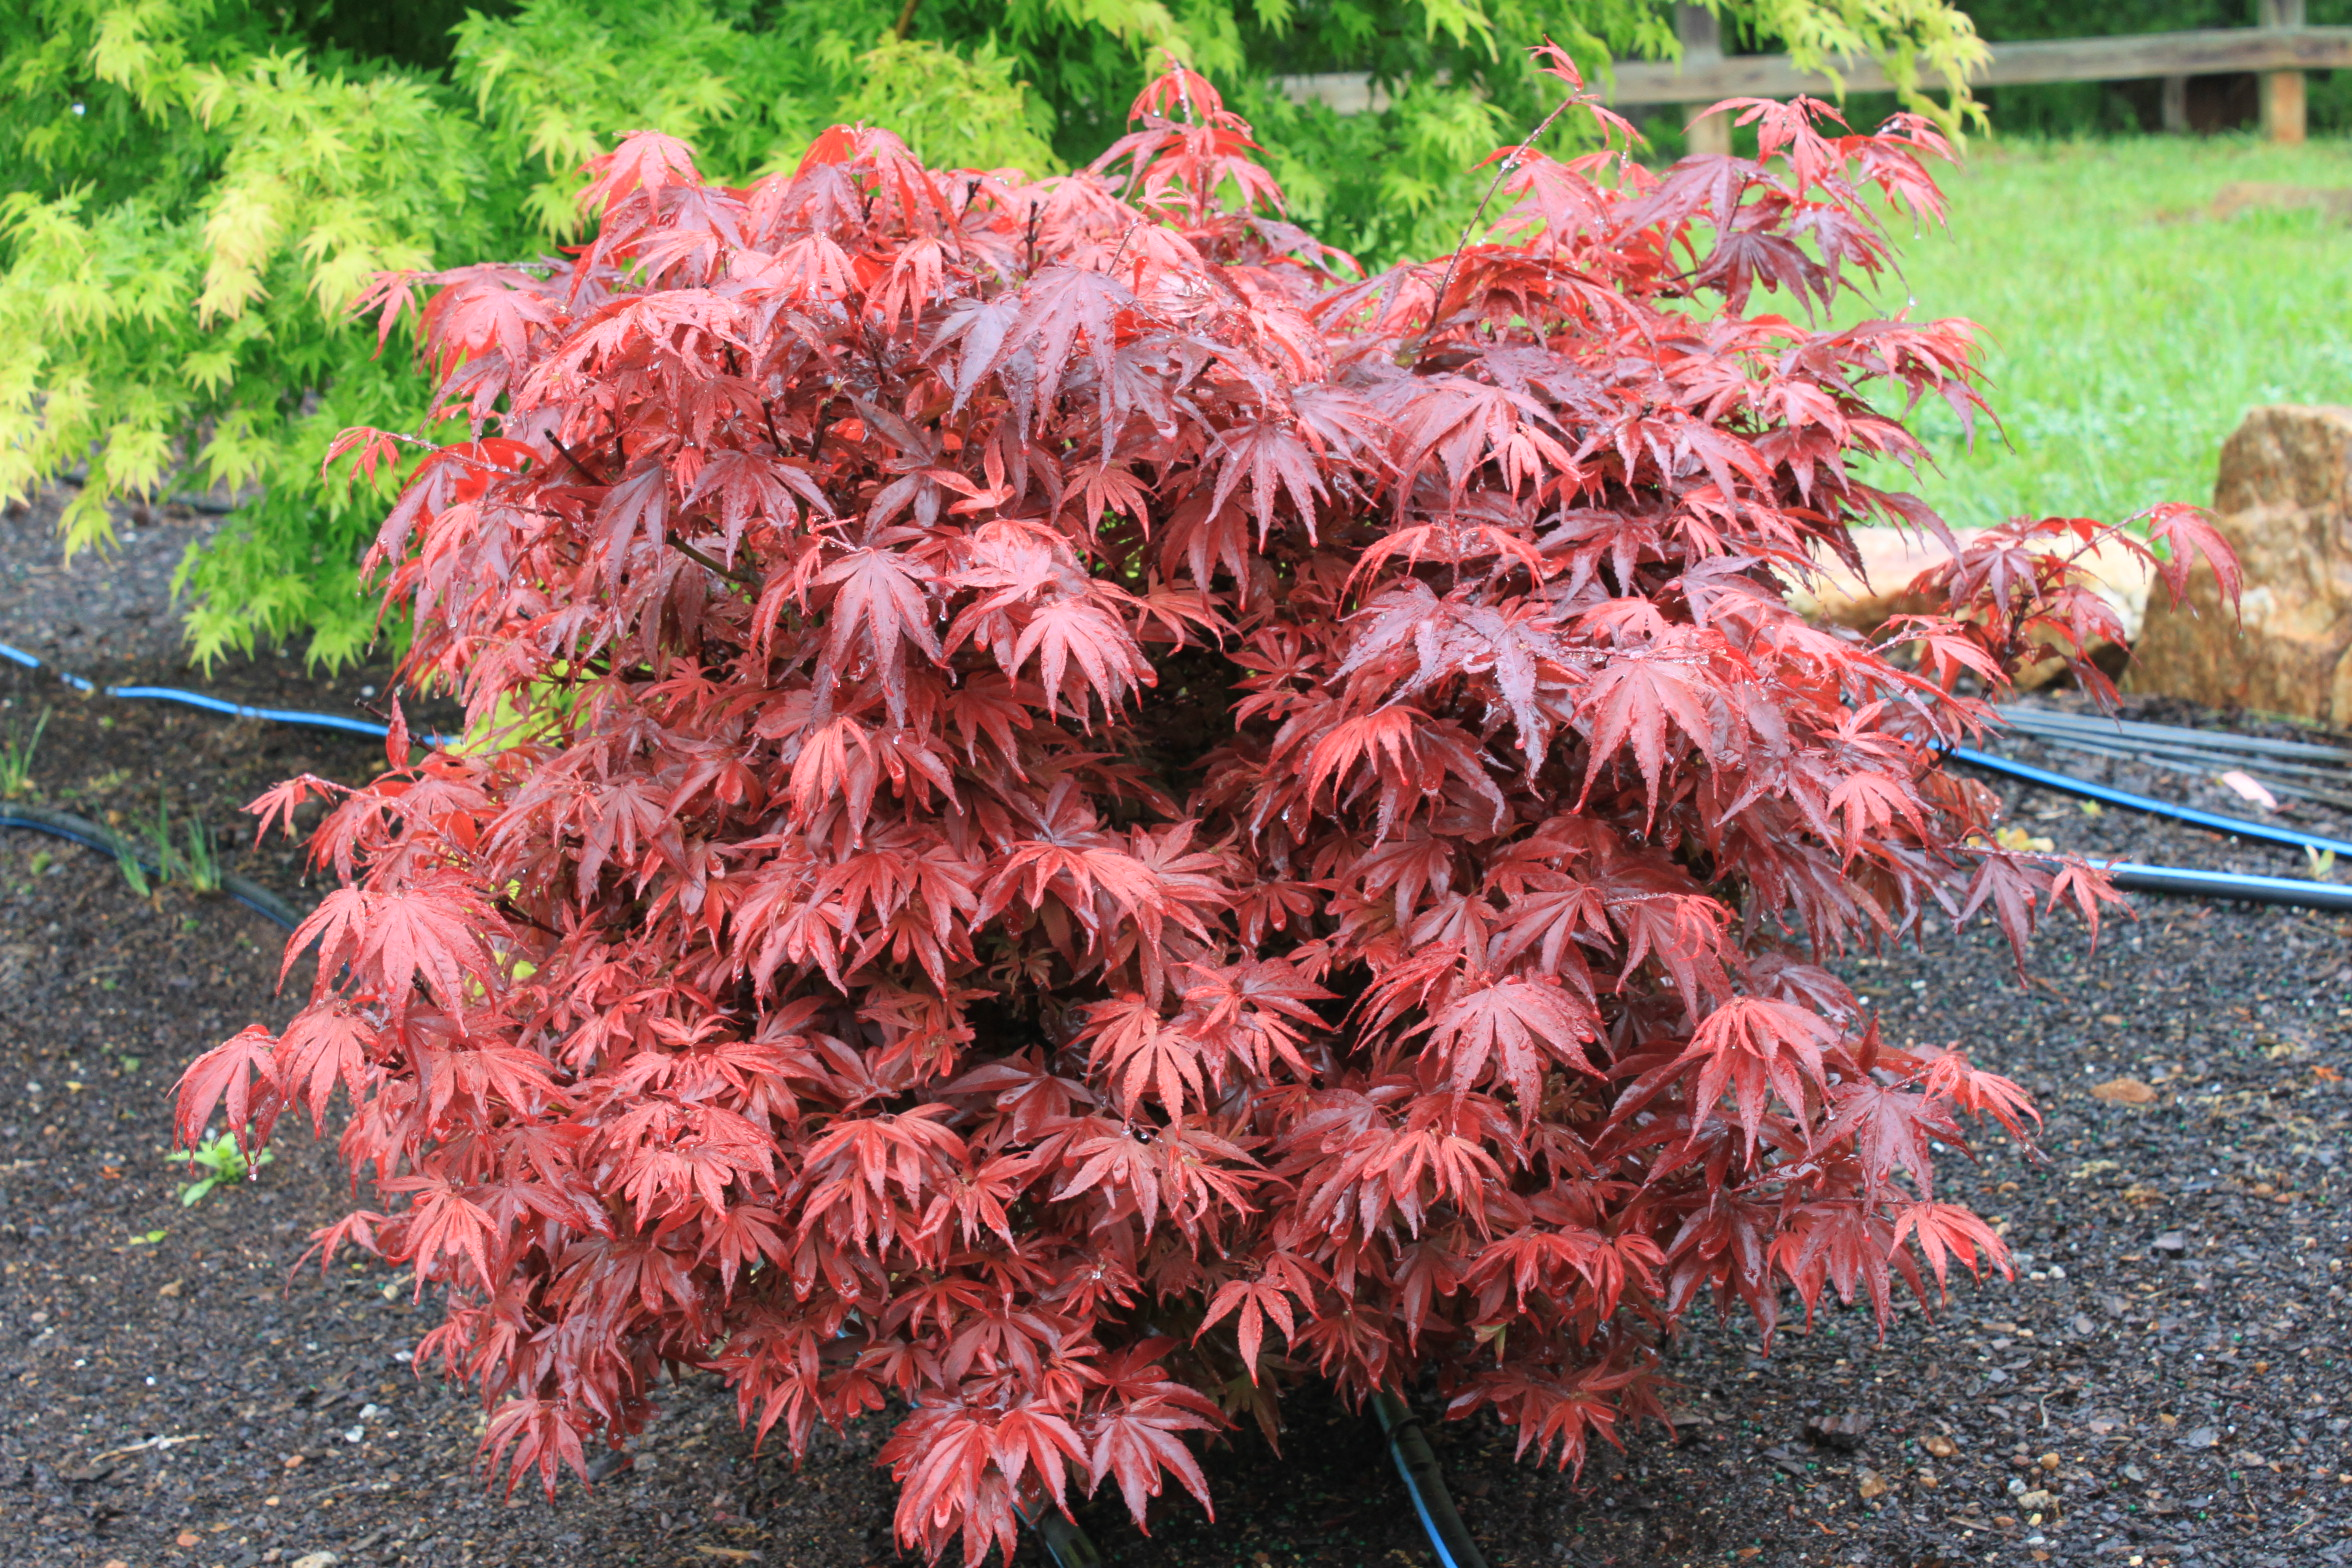 Japanese maple mature size, nanny sex stories